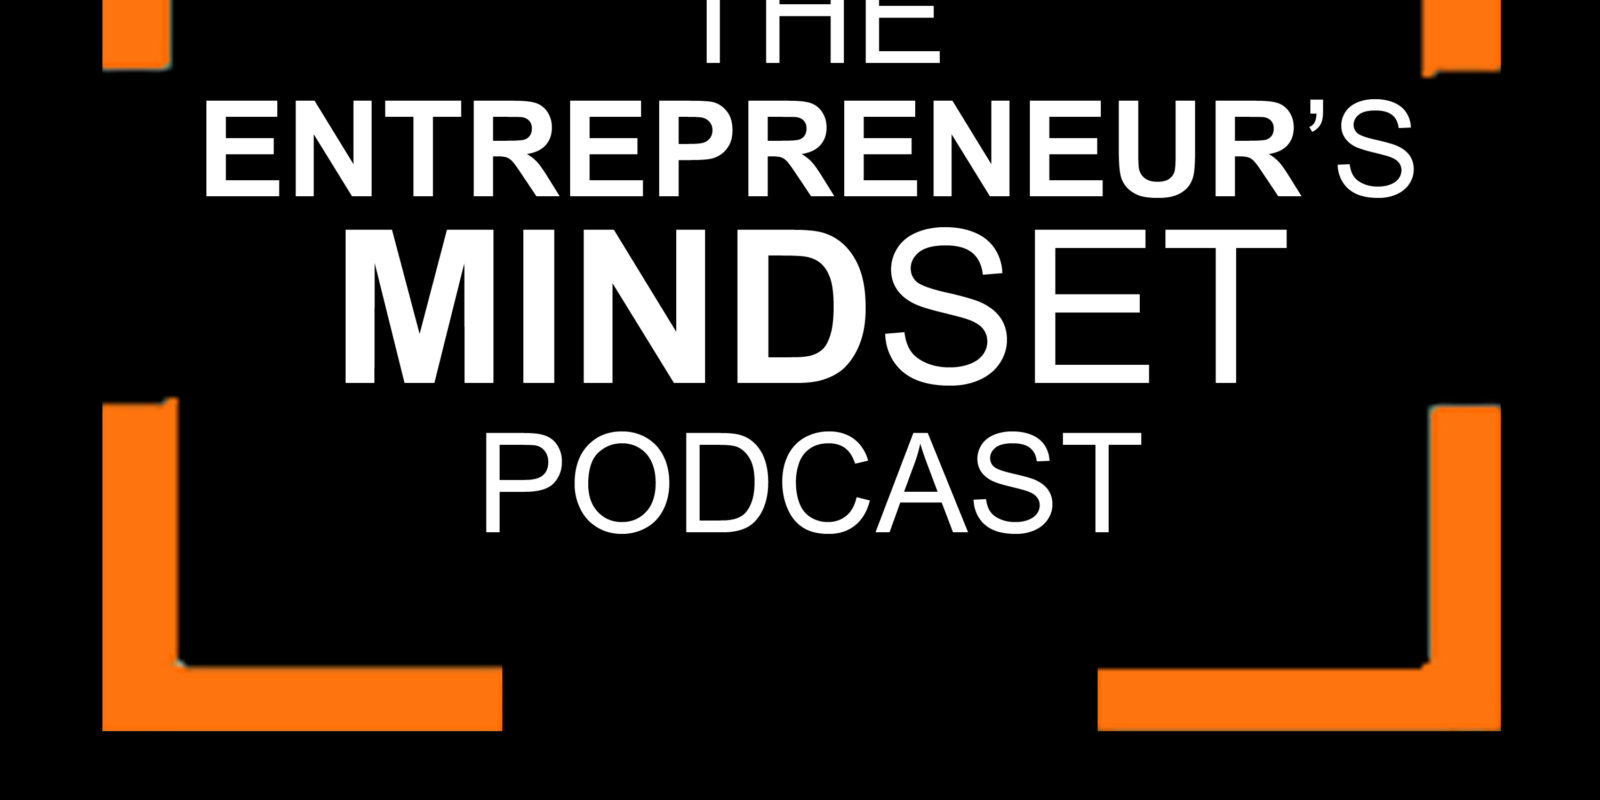 [Podcast] How is your life-purpose connected to your business success?